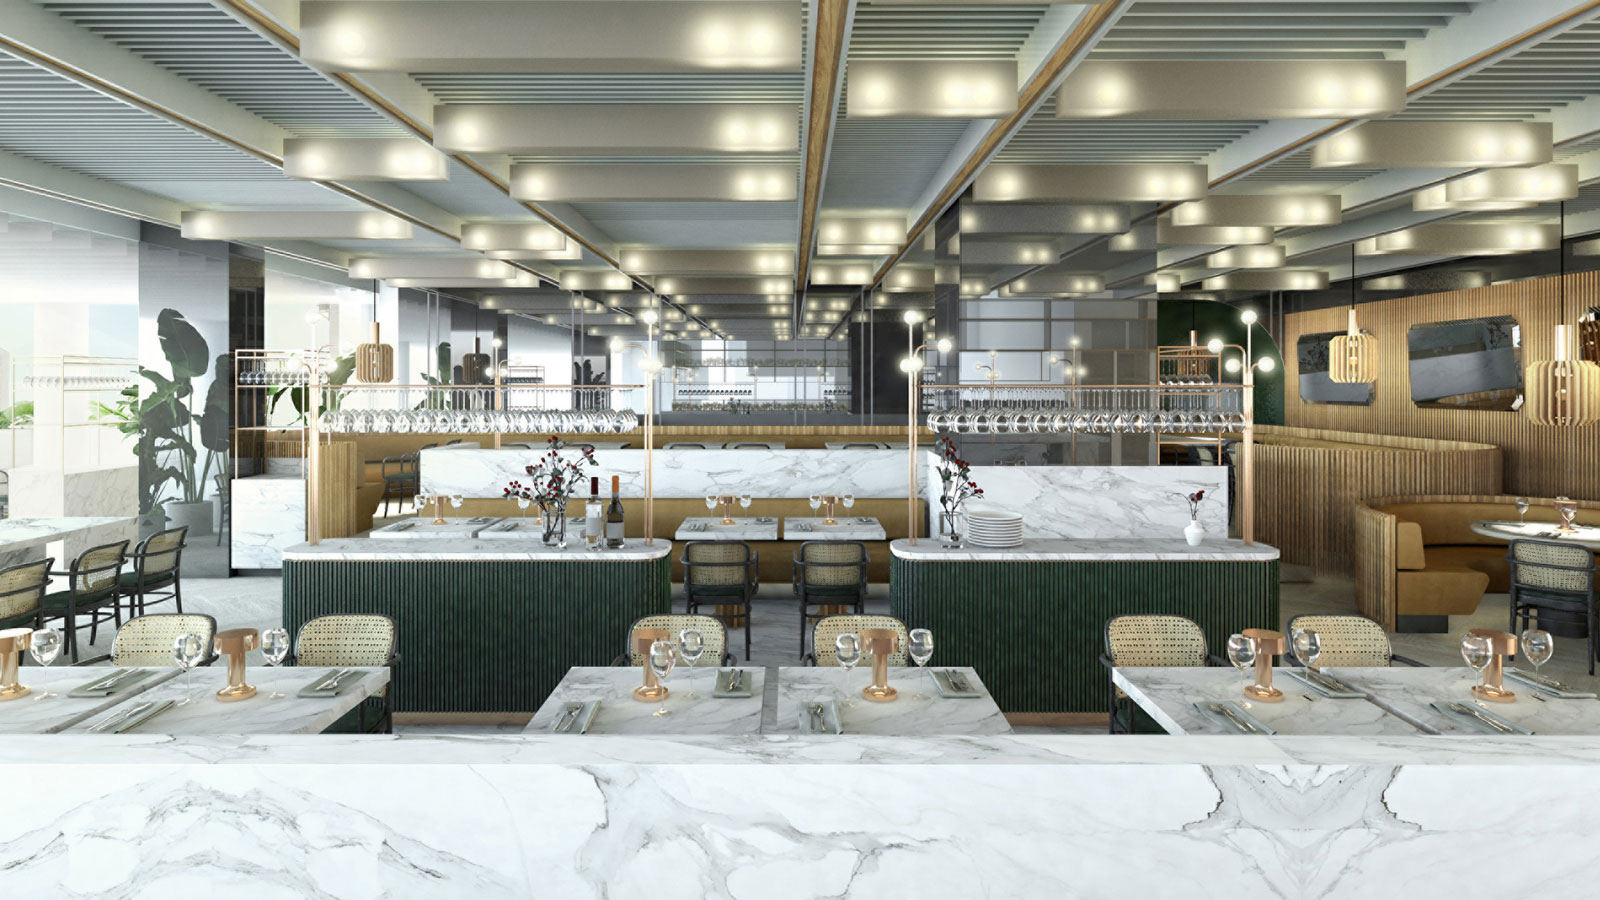 10 hotly anticipated hotels opening in 2019: Four Seasons Montreal